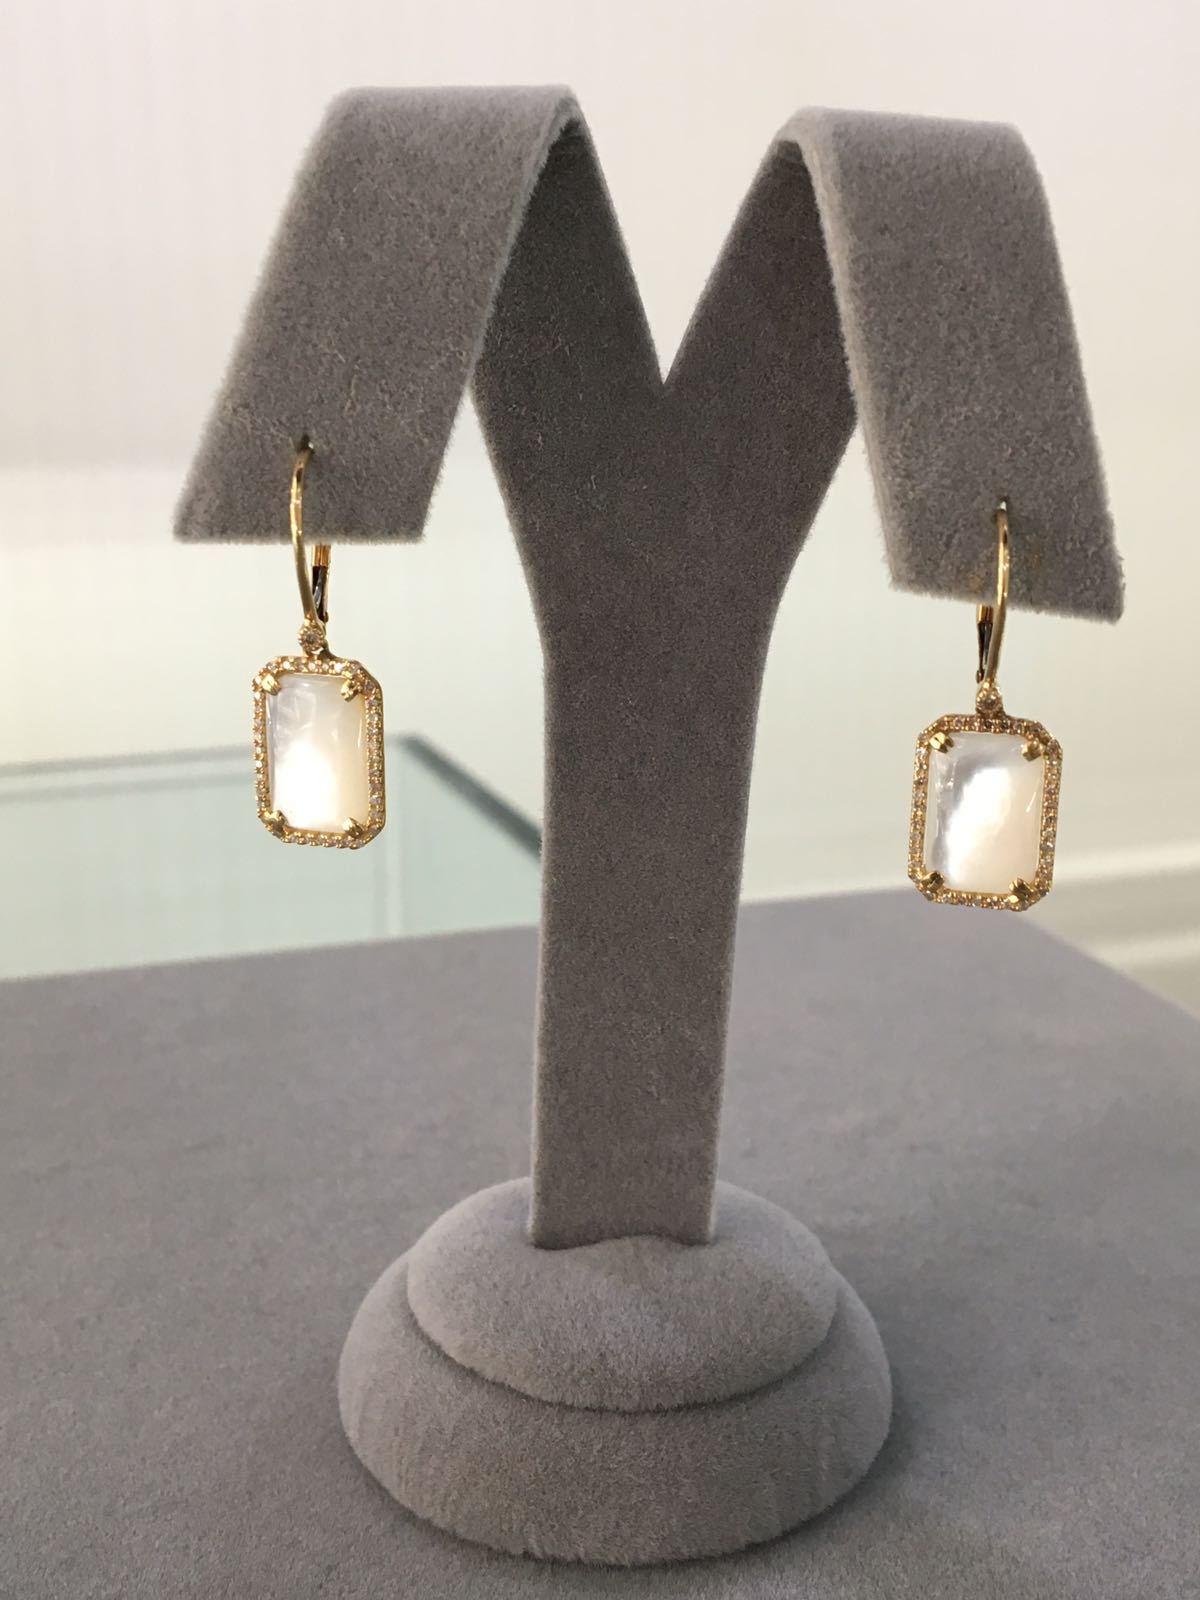 SALE! Heaven Mother-of-Pearl Earrings with Diamonds